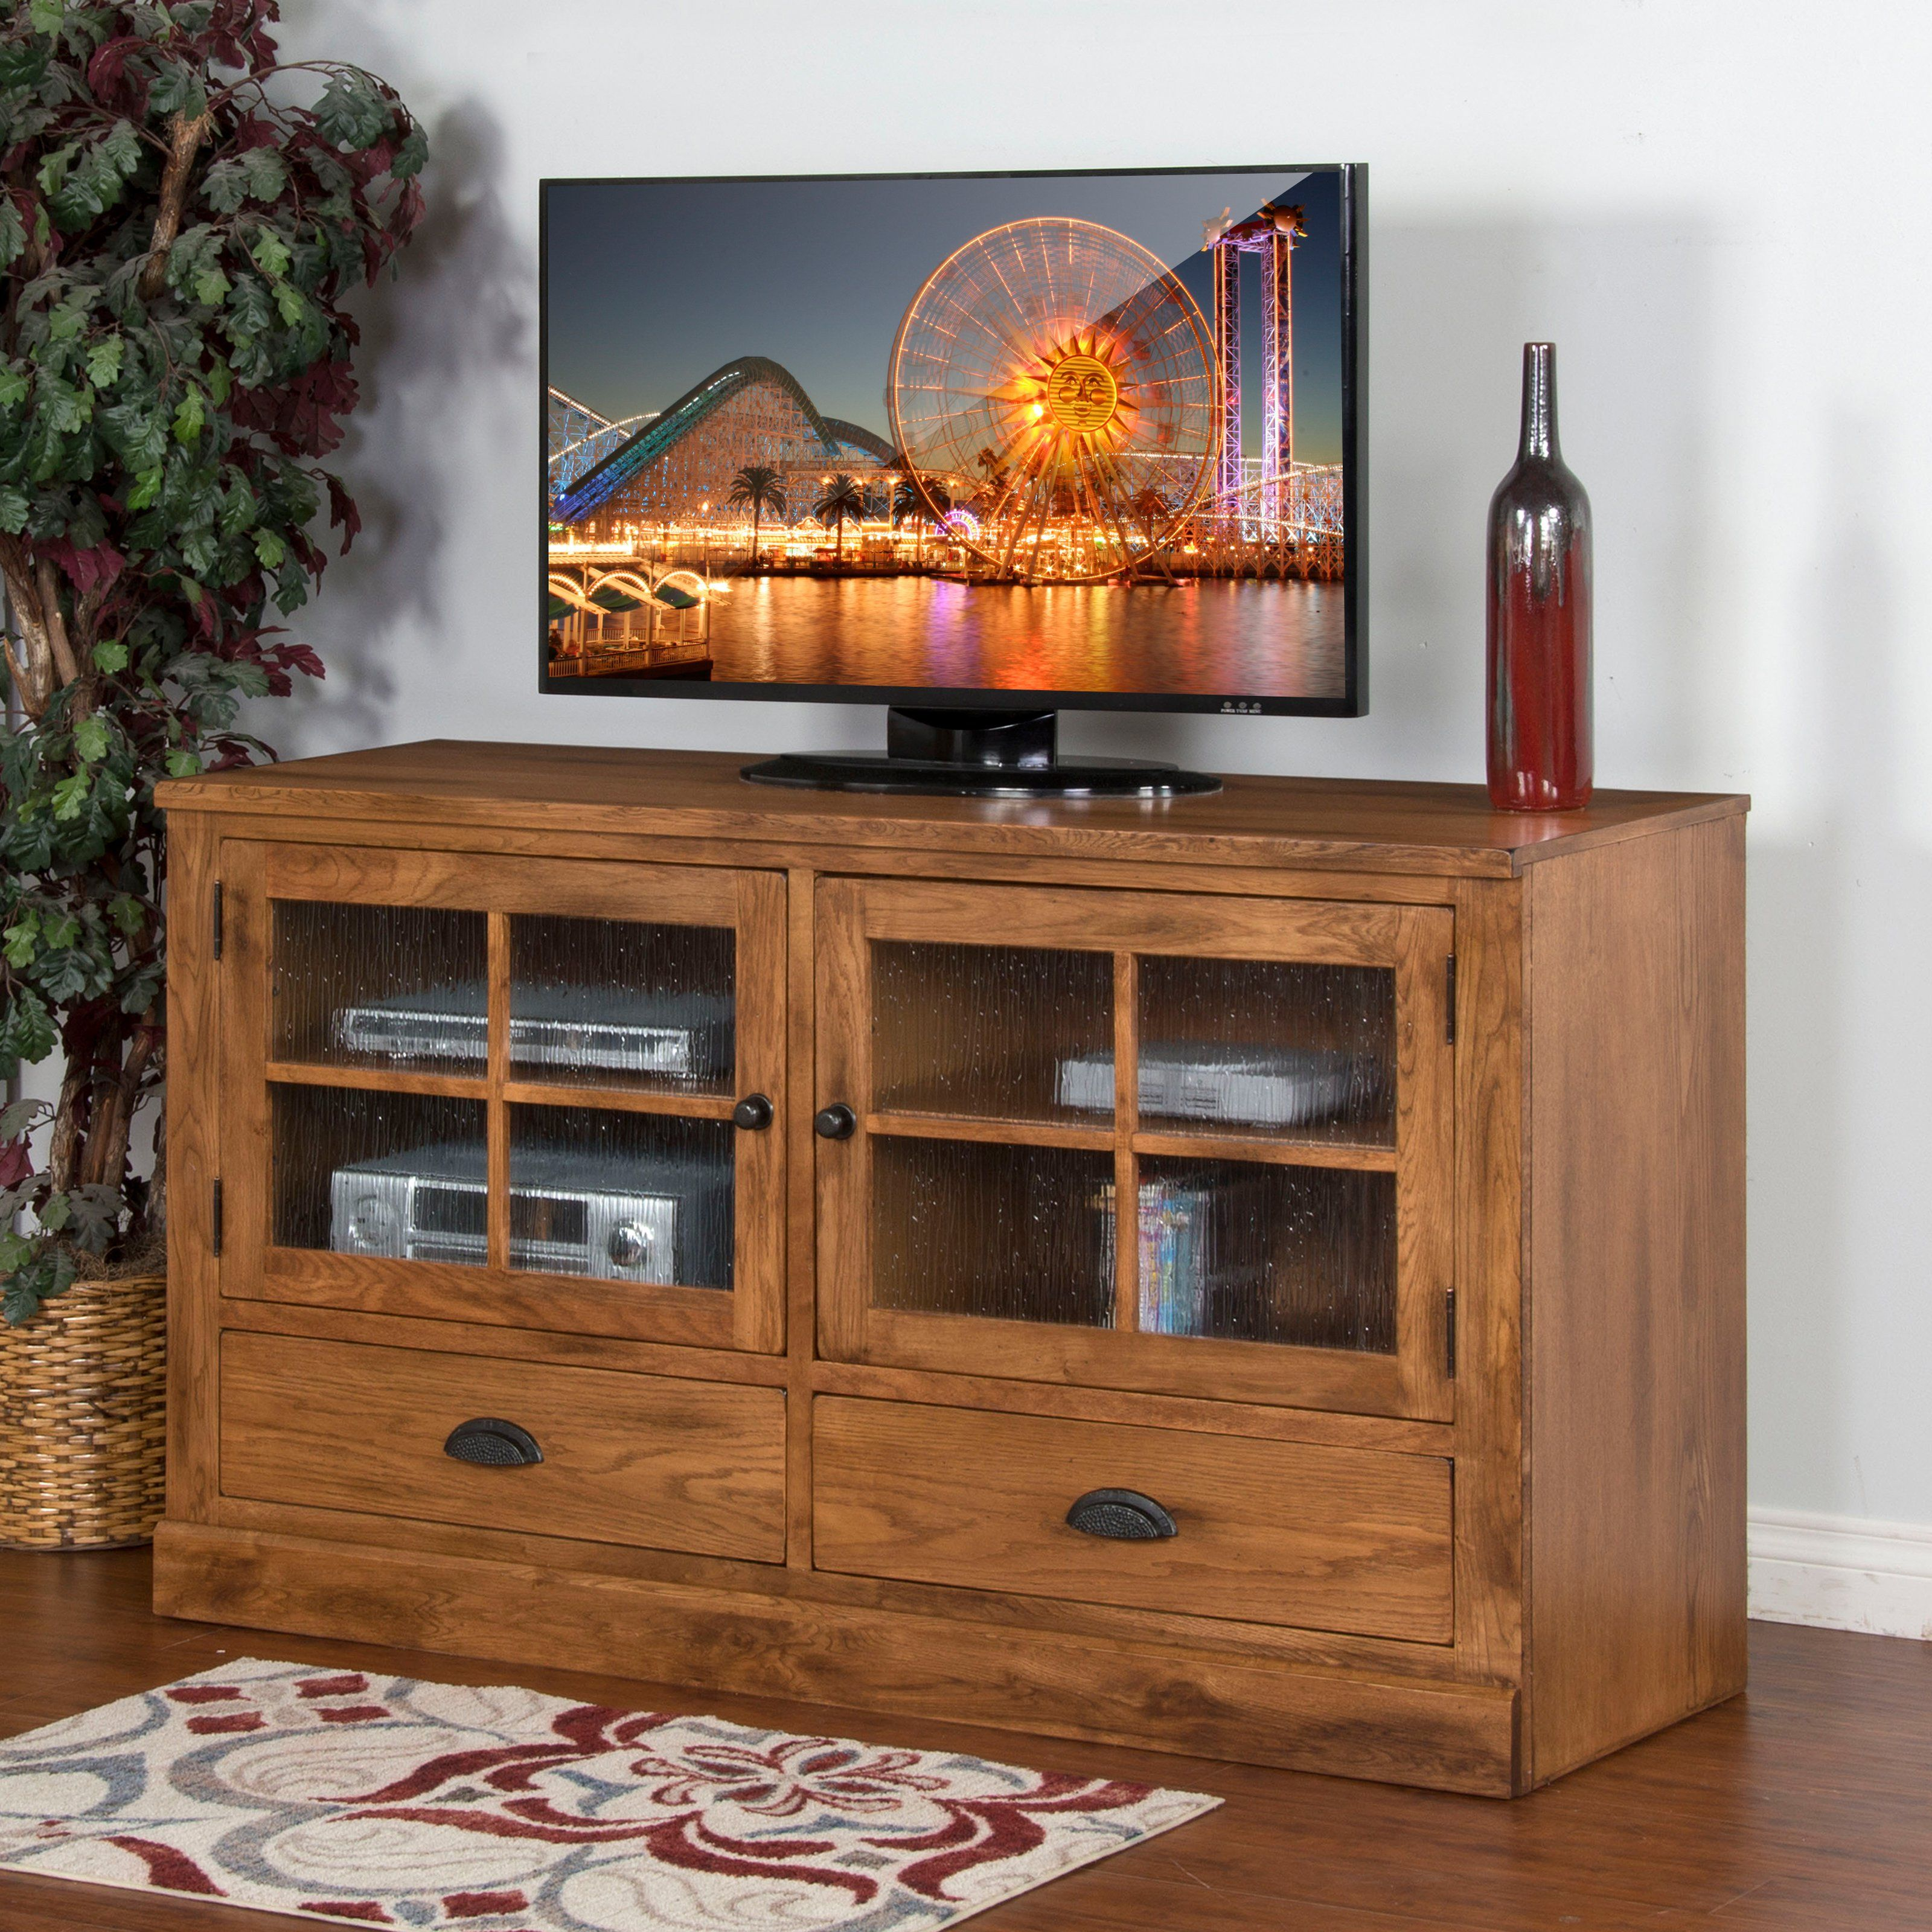 Entertainment Center Rustic Oak You Have Two Terrific Options To Choose From When Selecting The Sunny Designs Sedona 63 In